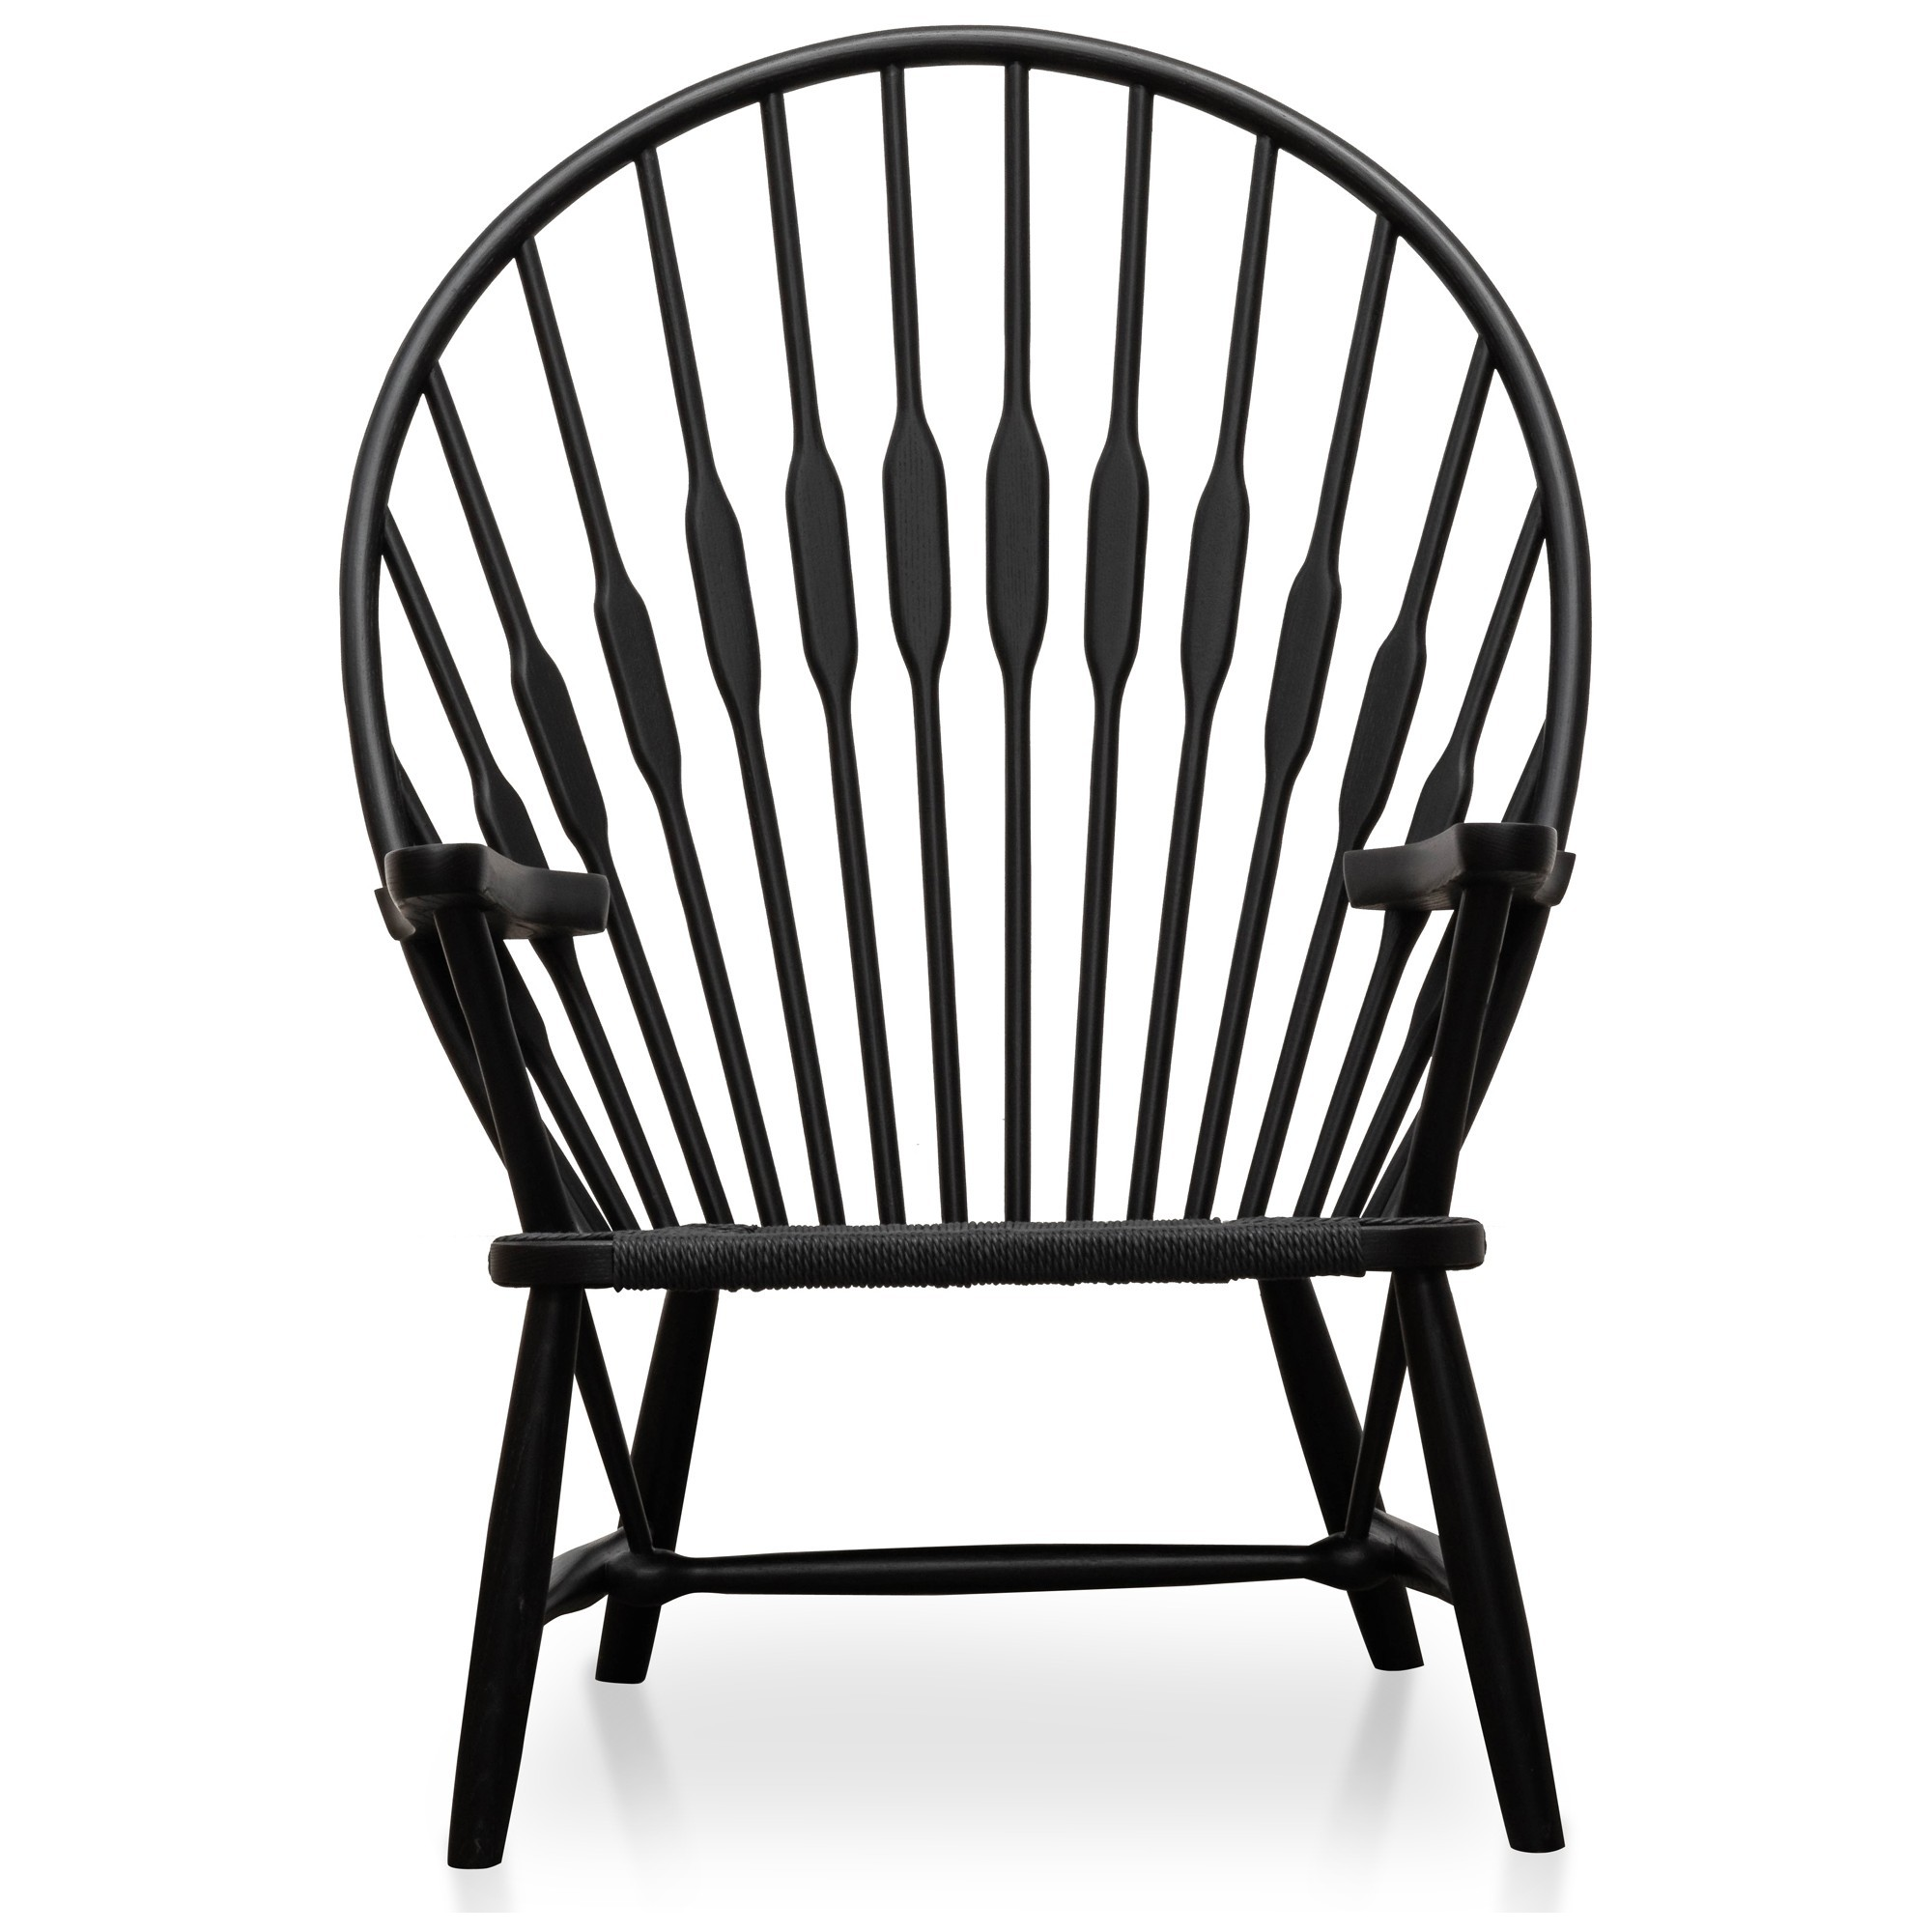 Replica Hans Wegner Peacock Chair, Black